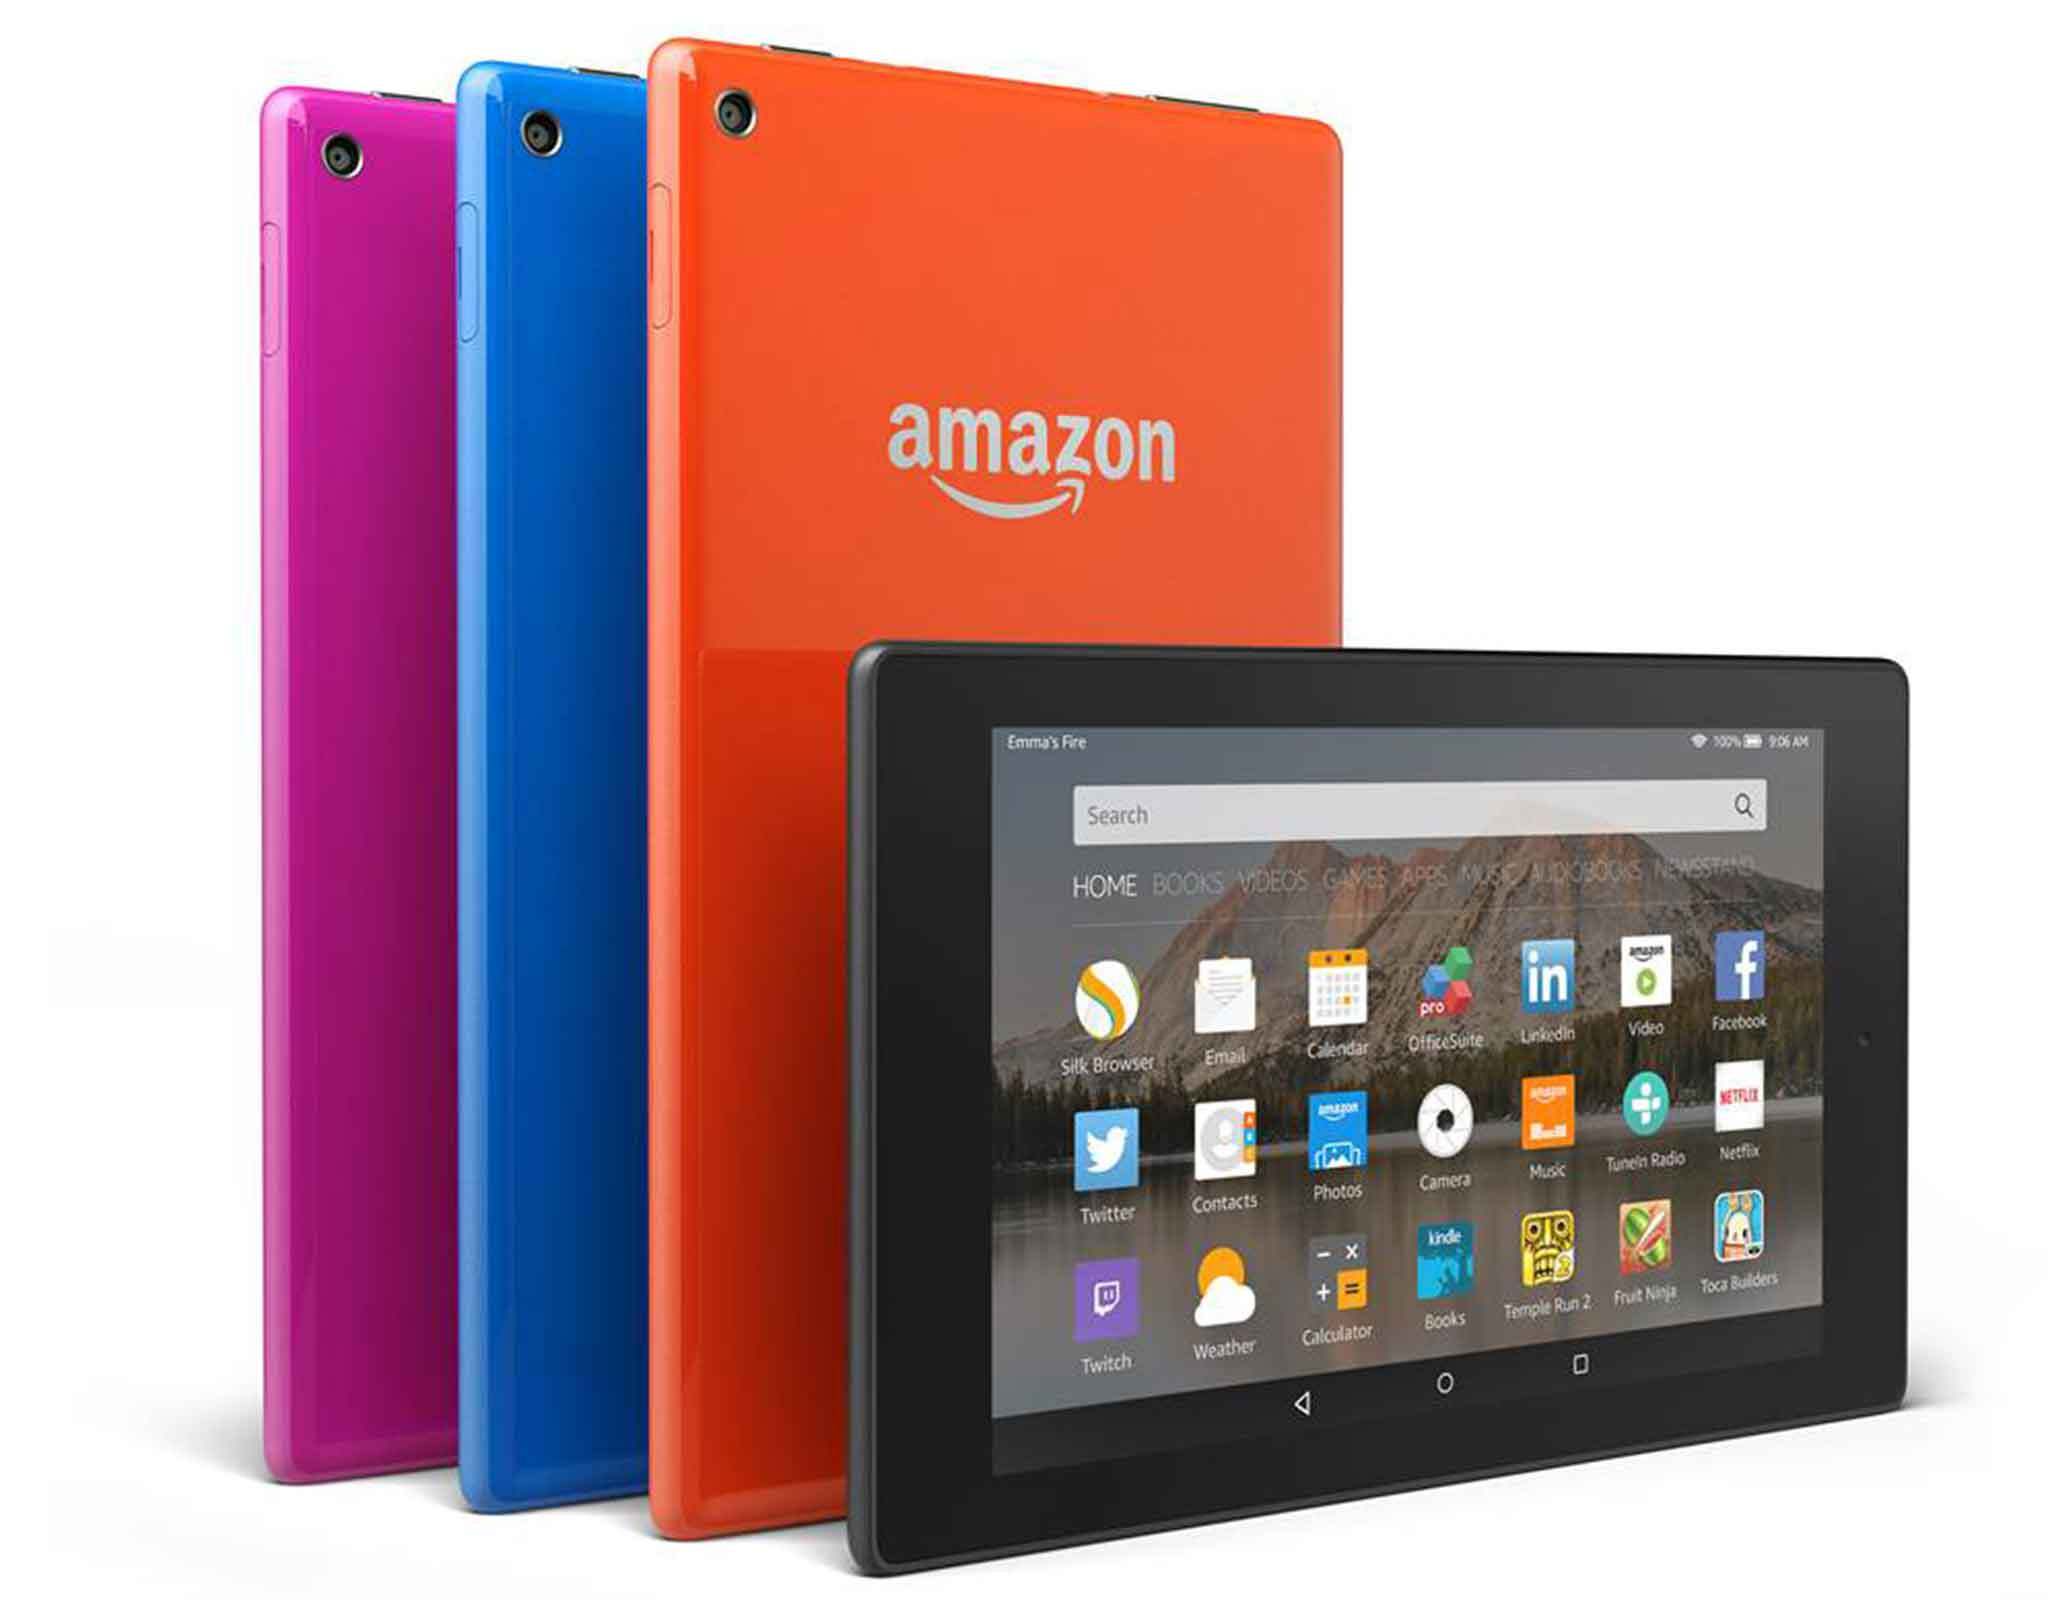 Amazon launches super cheap fire tablet and 4k tv box for Amazon casa